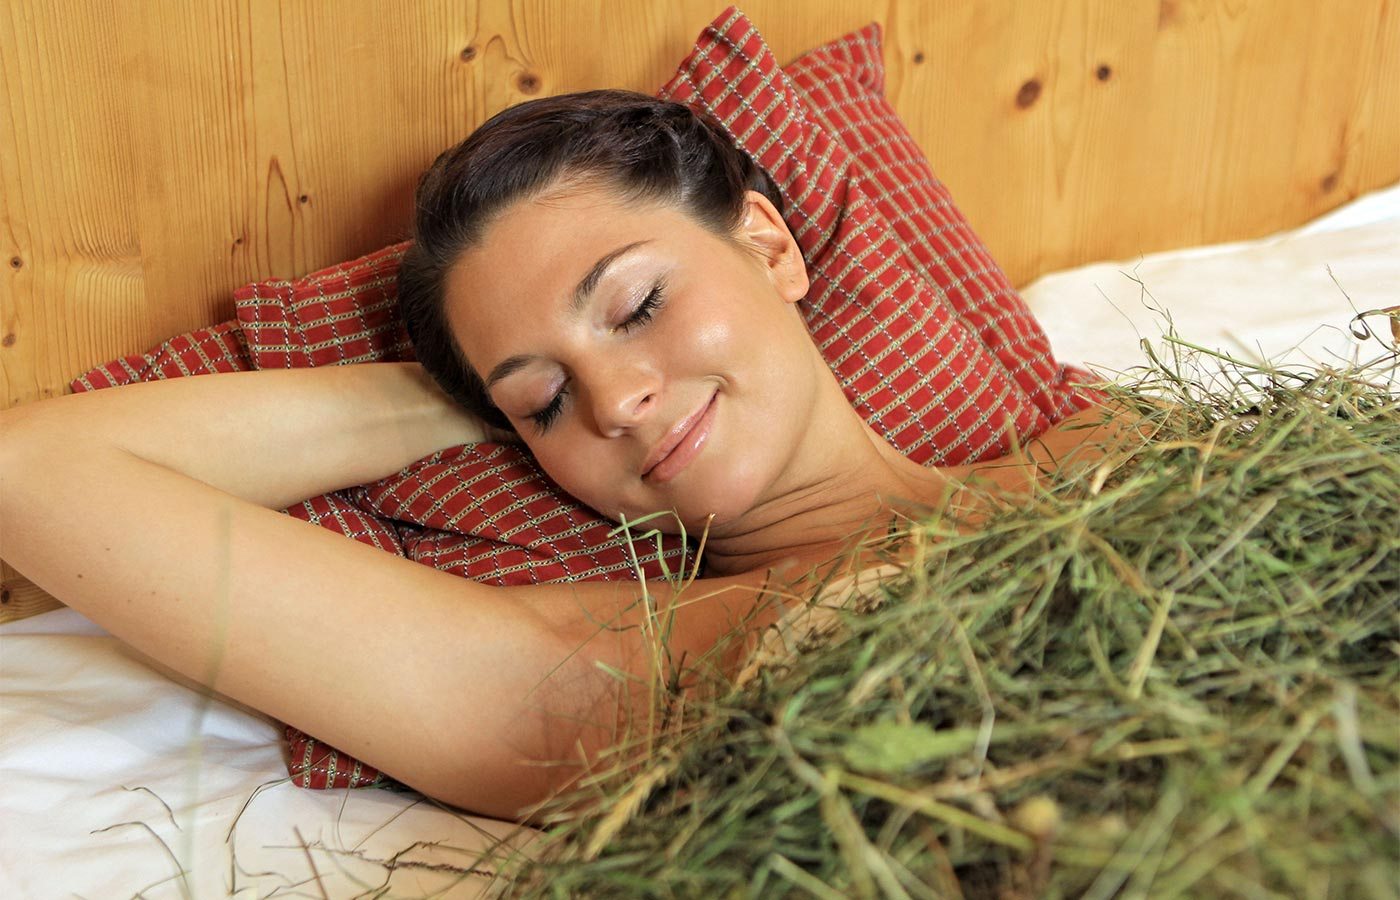 Girl immersed in the hay bath enjoy a moment of well-being